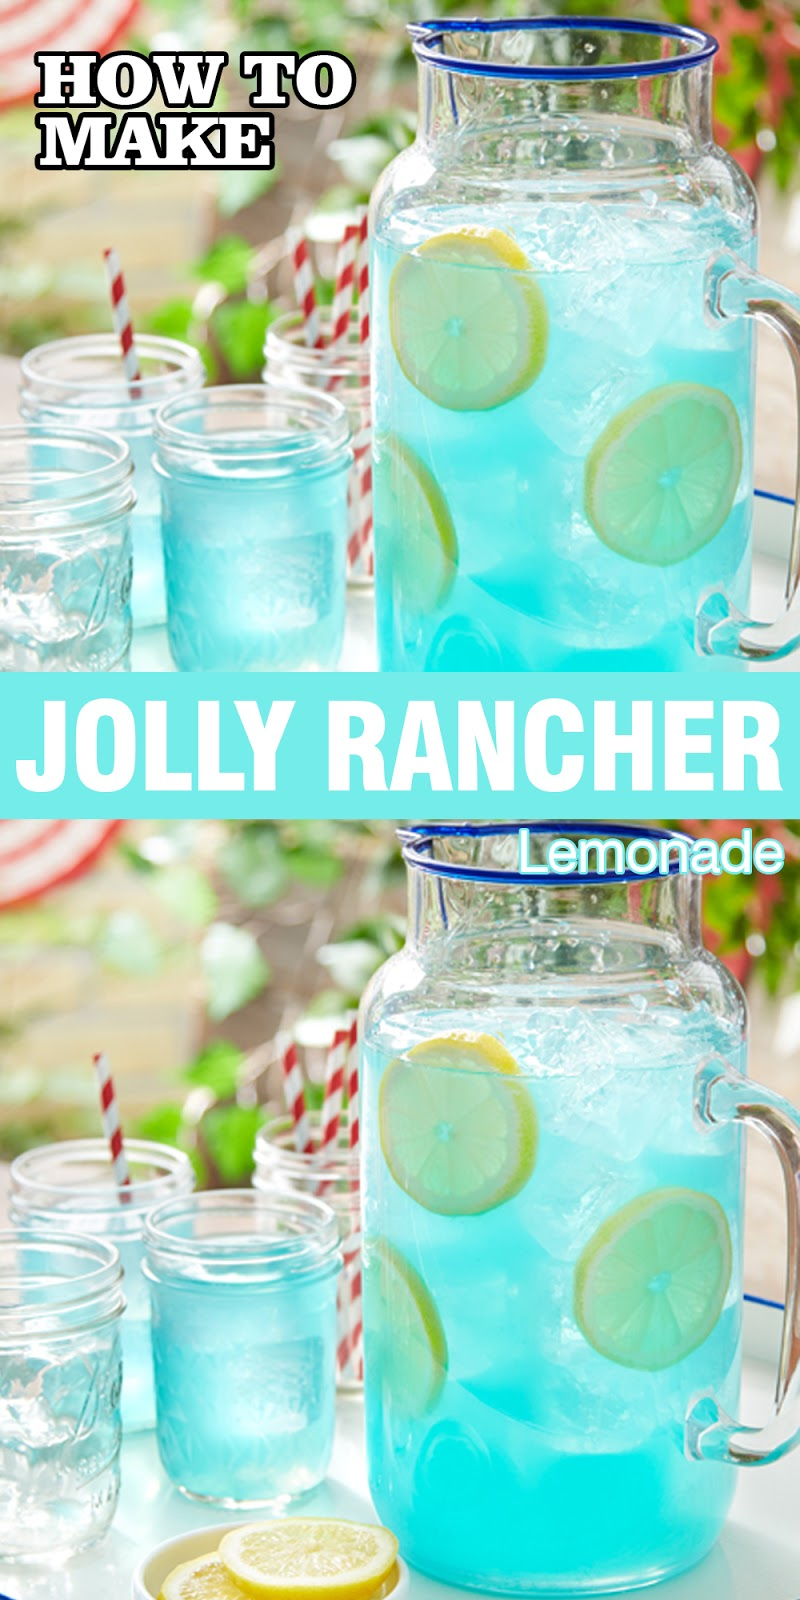 JOLLY RANCHER LEMONADE